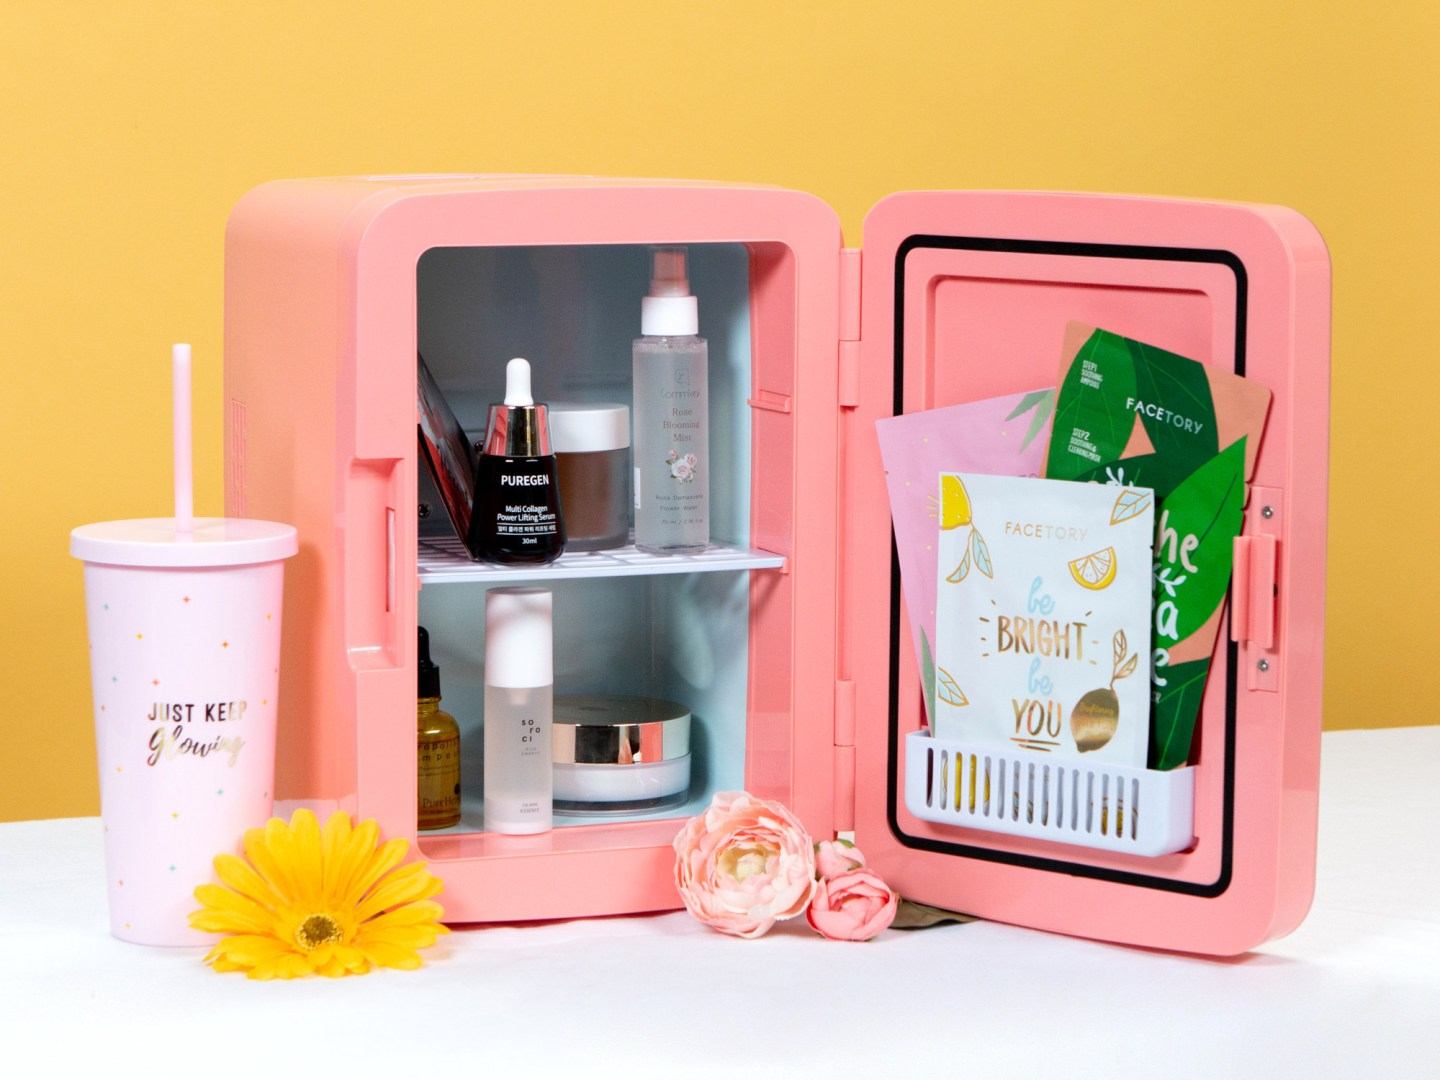 A Fridge for your Makeup? The FaceTory Fridge